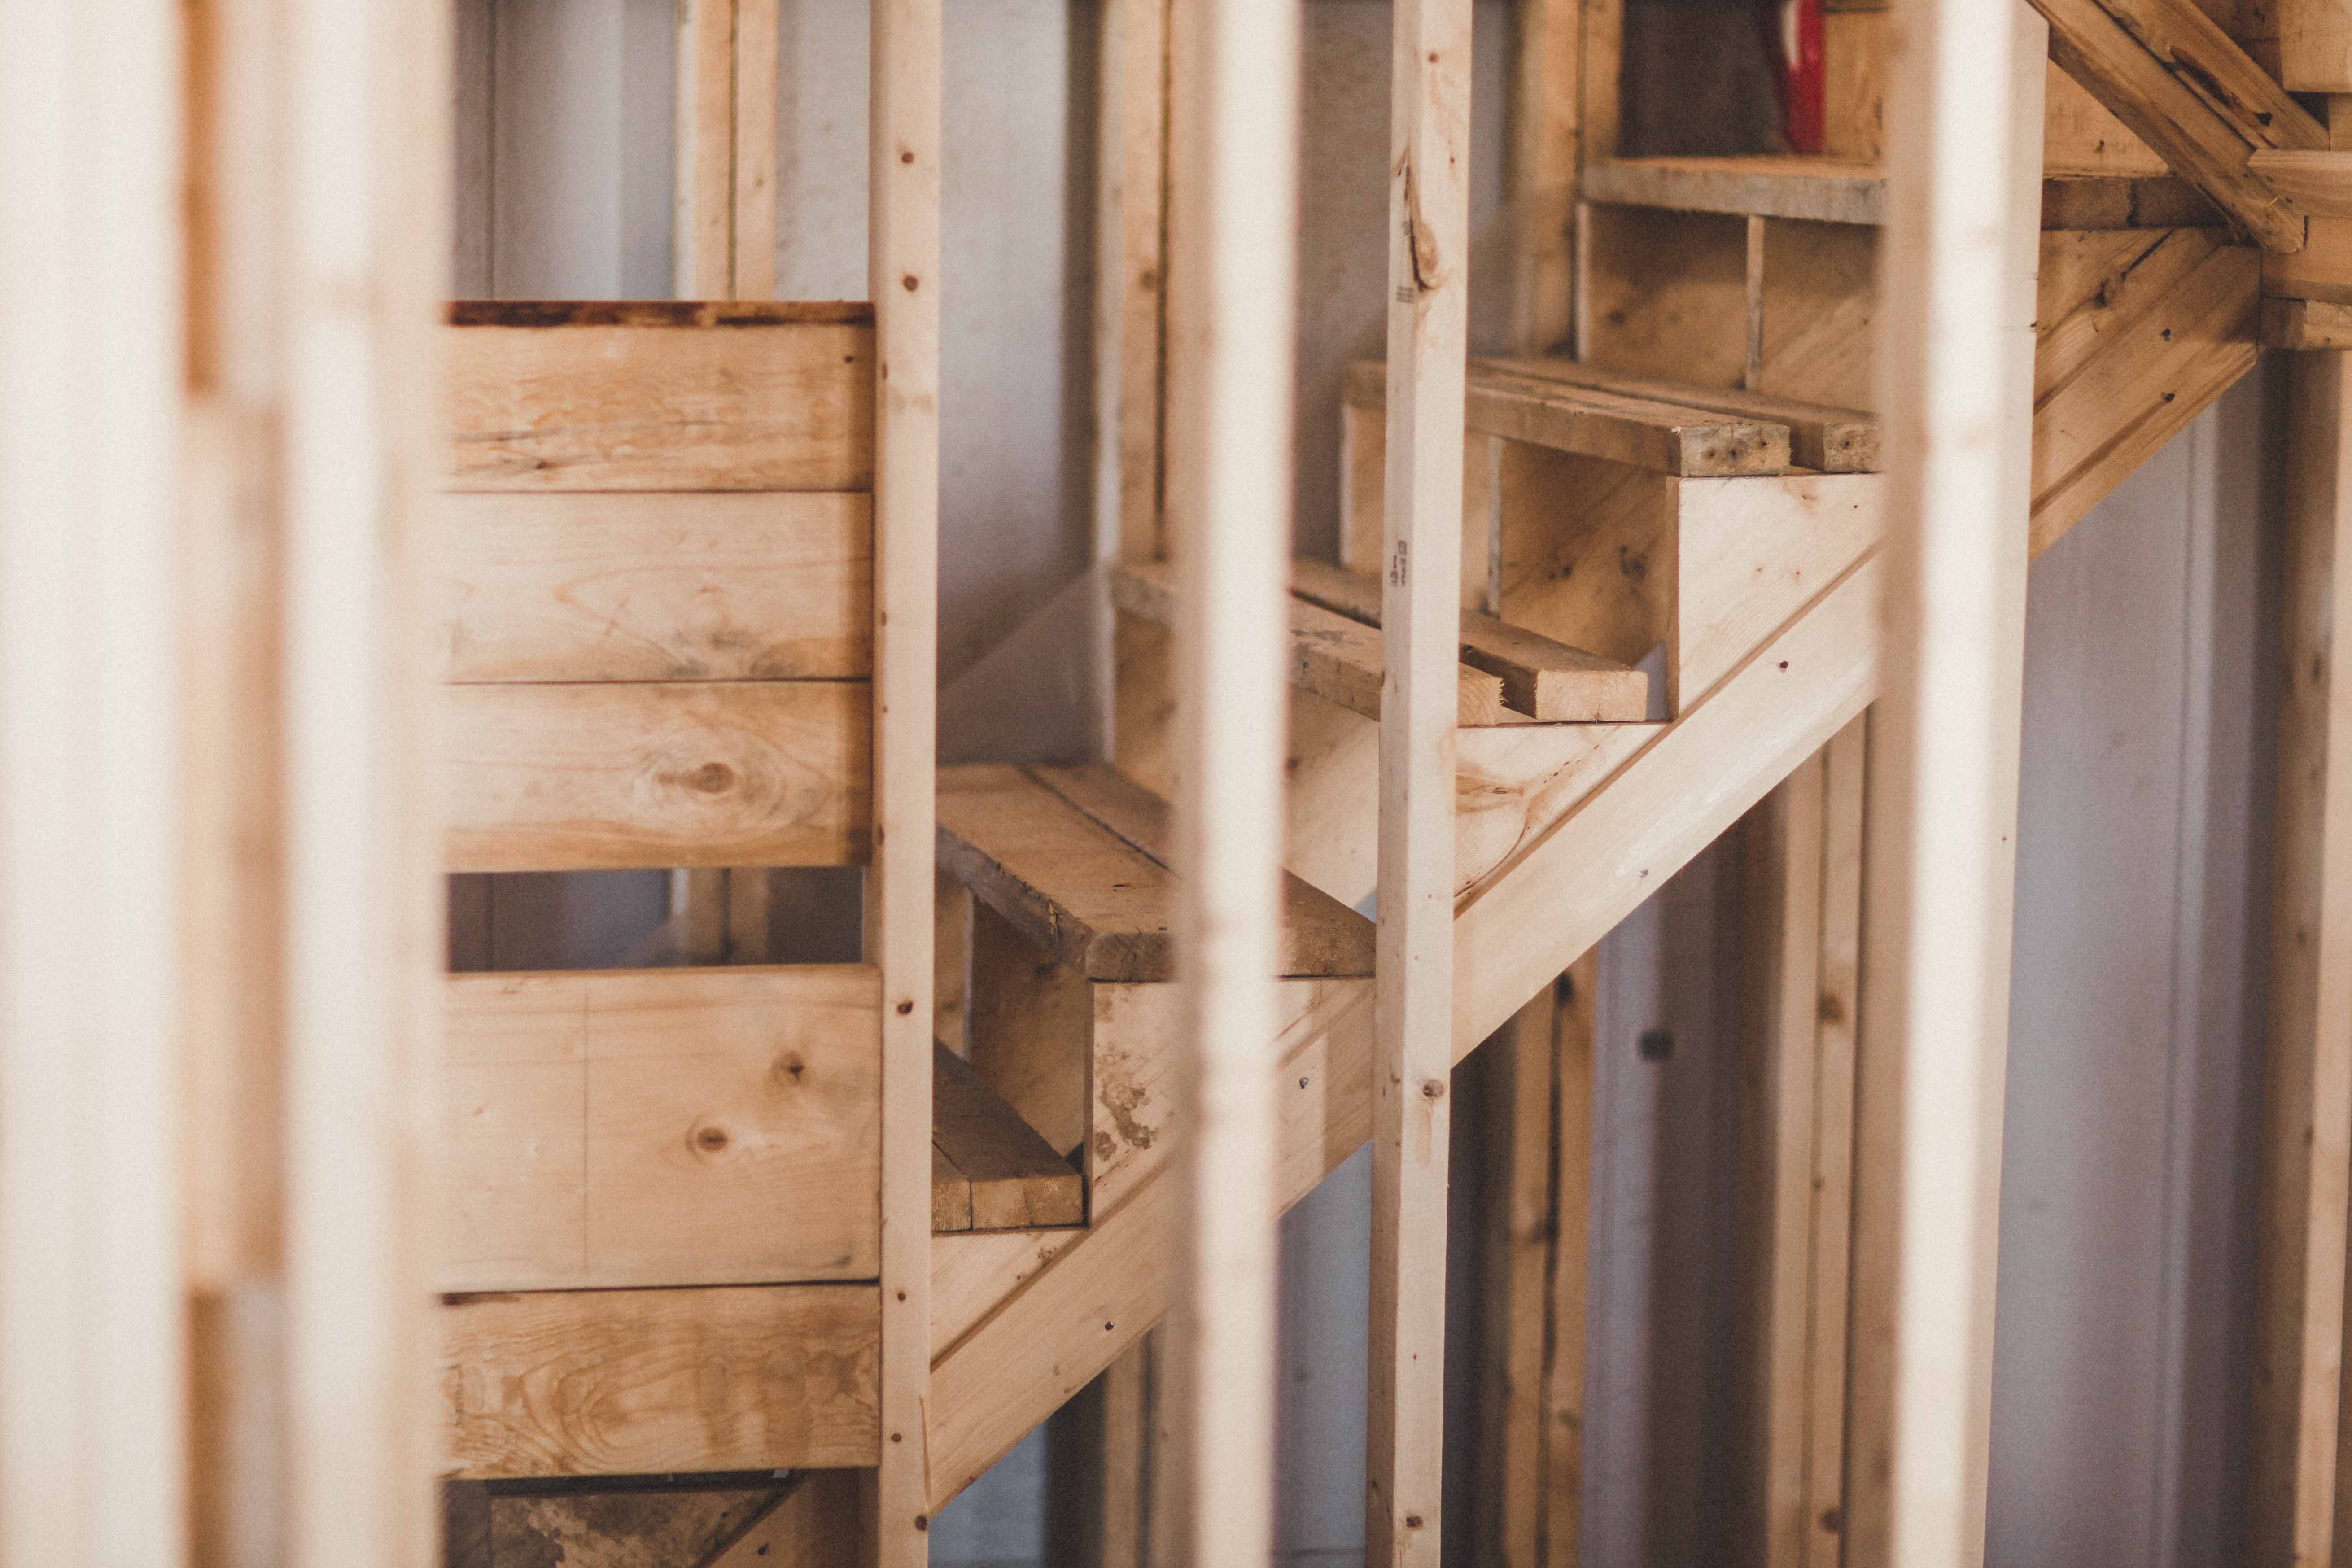 Wooden frame of staircase